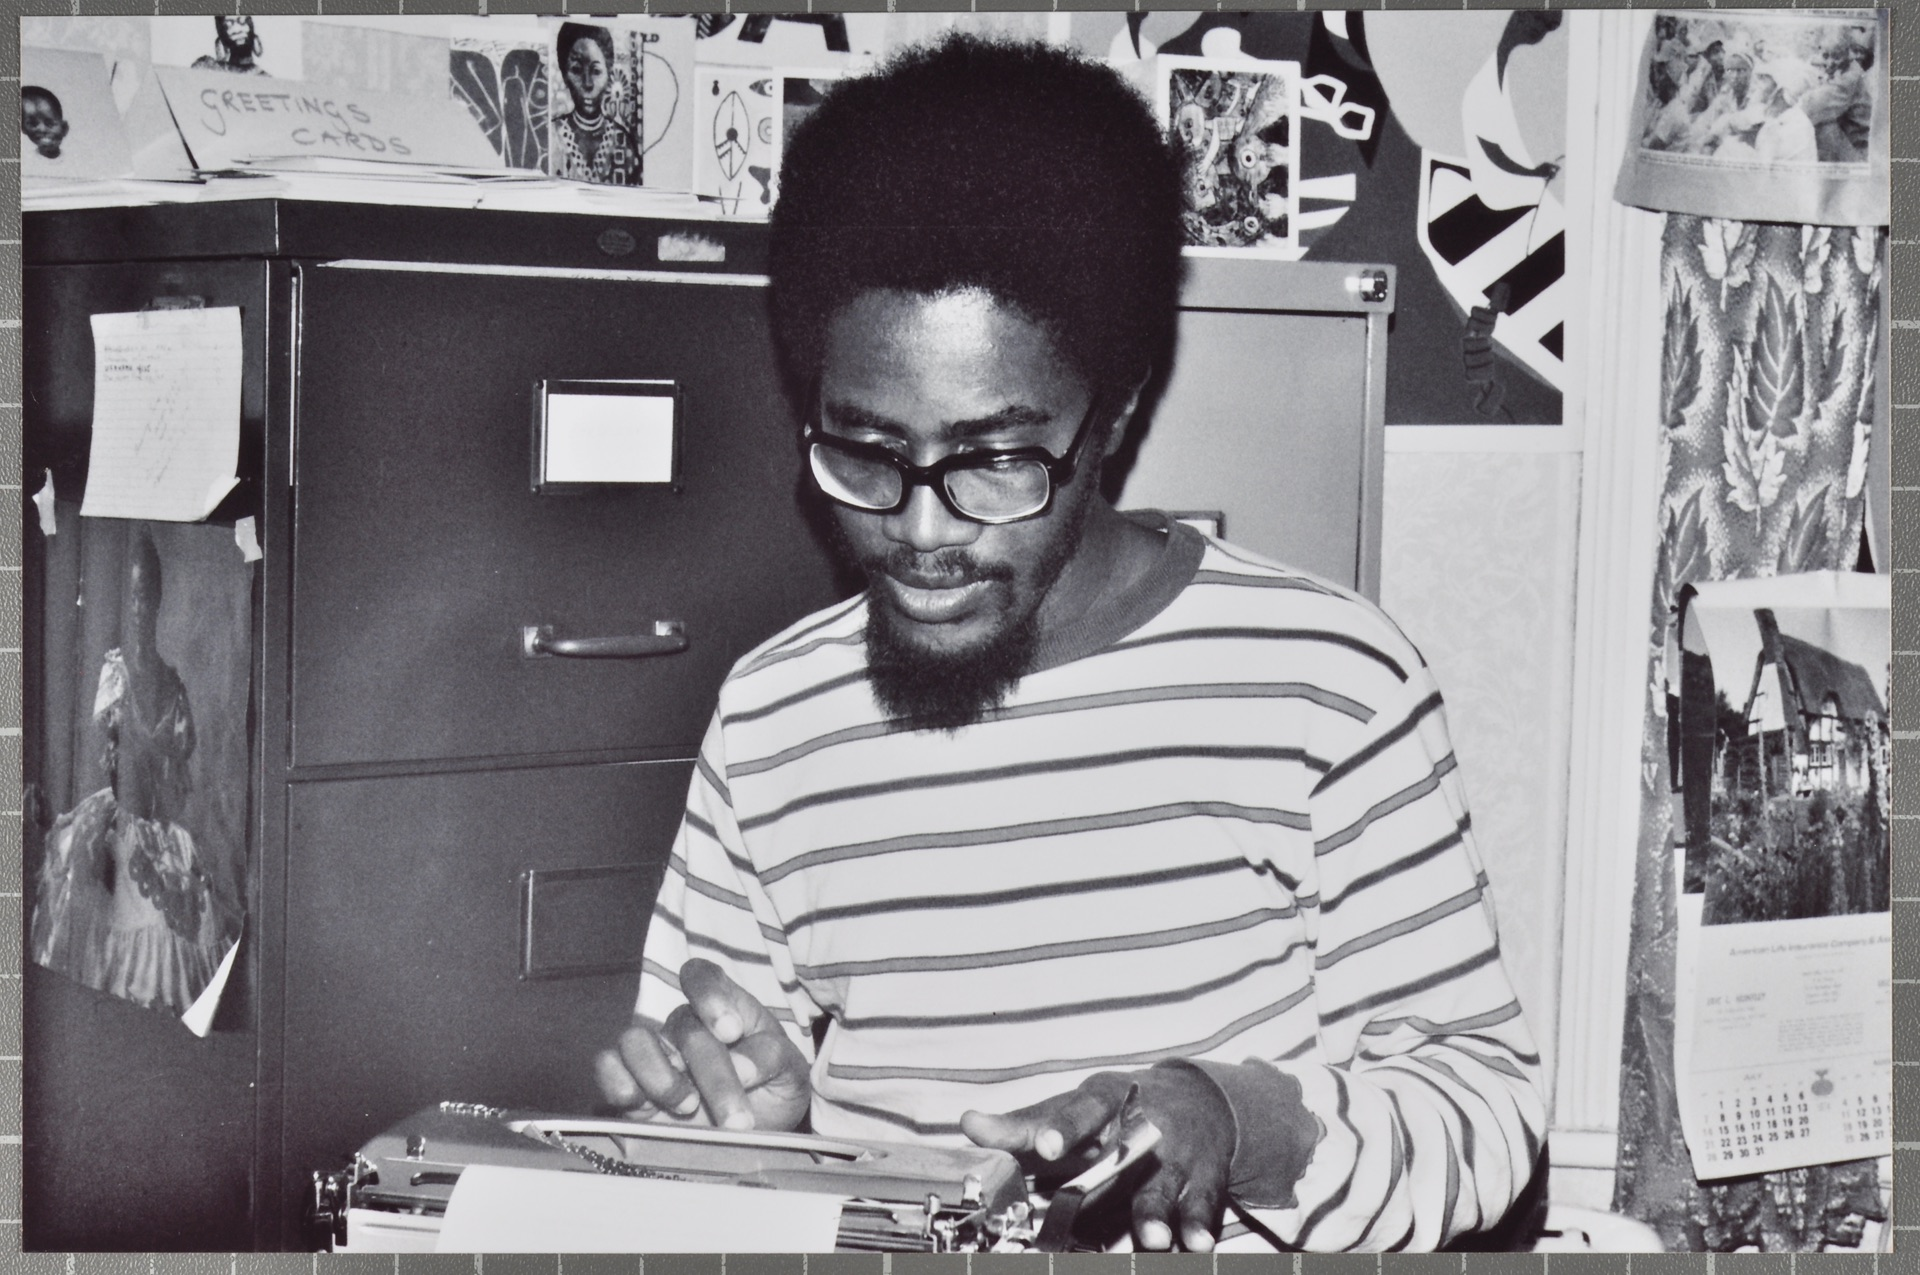 _03 Walter Rodney at 141 Coldershwaw Rd. c1960s. Huntley Archives at London Metropolitan Archives